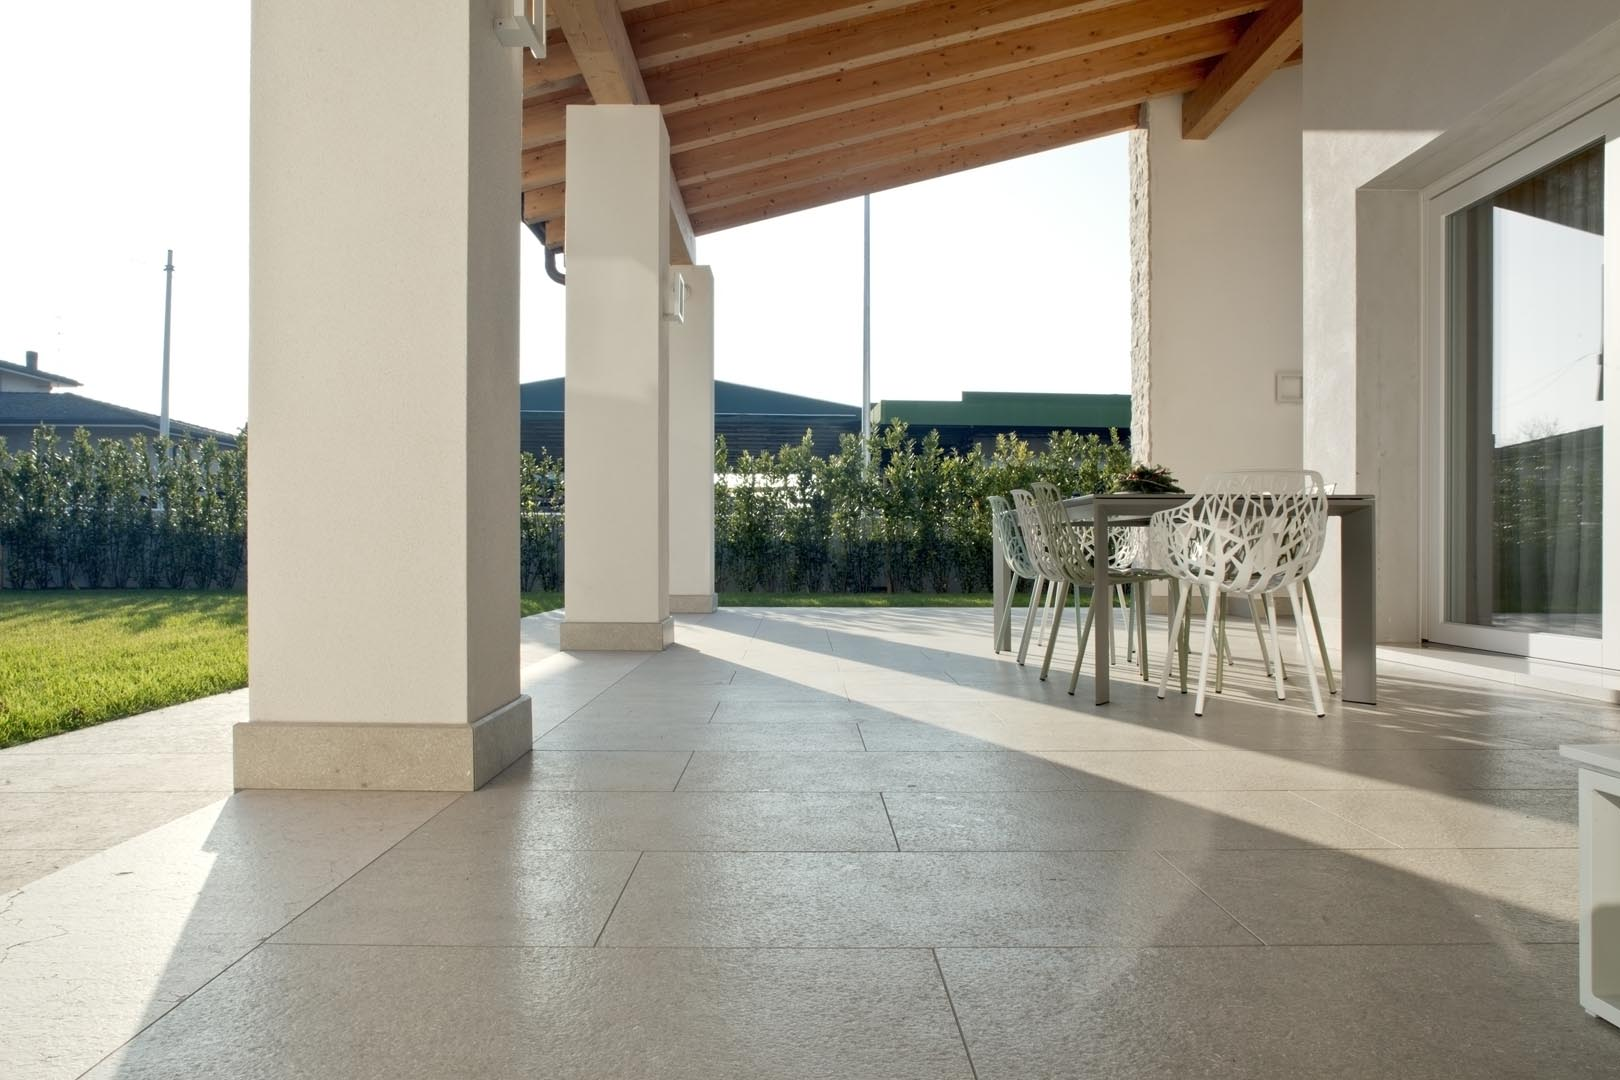 Grolla Grigio Olivo Ondulato - Grolla hard limestone, the company's flagship product, is a versatile and resistant material because it lends itself to all types of processing.  What distinguishes this stone from the others are its extraordinary certified technical-mechanical characteristics, such as low water absorption, resistance to abrasion, salt, pollution and frost.  Thanks to these peculiarities, Grolla is suitable to the realisation of outdoor projects (ventilated and glued facades, floors, swimming pools) and interiors (wall coverings, floors, bathrooms, kitchens, objects and furnishing elements such as sinks, shower trays, tubs, tables and much more).  The colors of the Grolla range from beige to intense pink shades, passing through grey.  The remarkable technical characteristics, combined with the aesthetic qualities of this stone, adapt to suited to styles, architectural contexts and design from classic to contemporary, perfectly matching with wood, glass, steel and other materials.  Interiors and exteriors, classicism and contemporaneity: for Grolla, every solution is possible. | Matter of Stuff